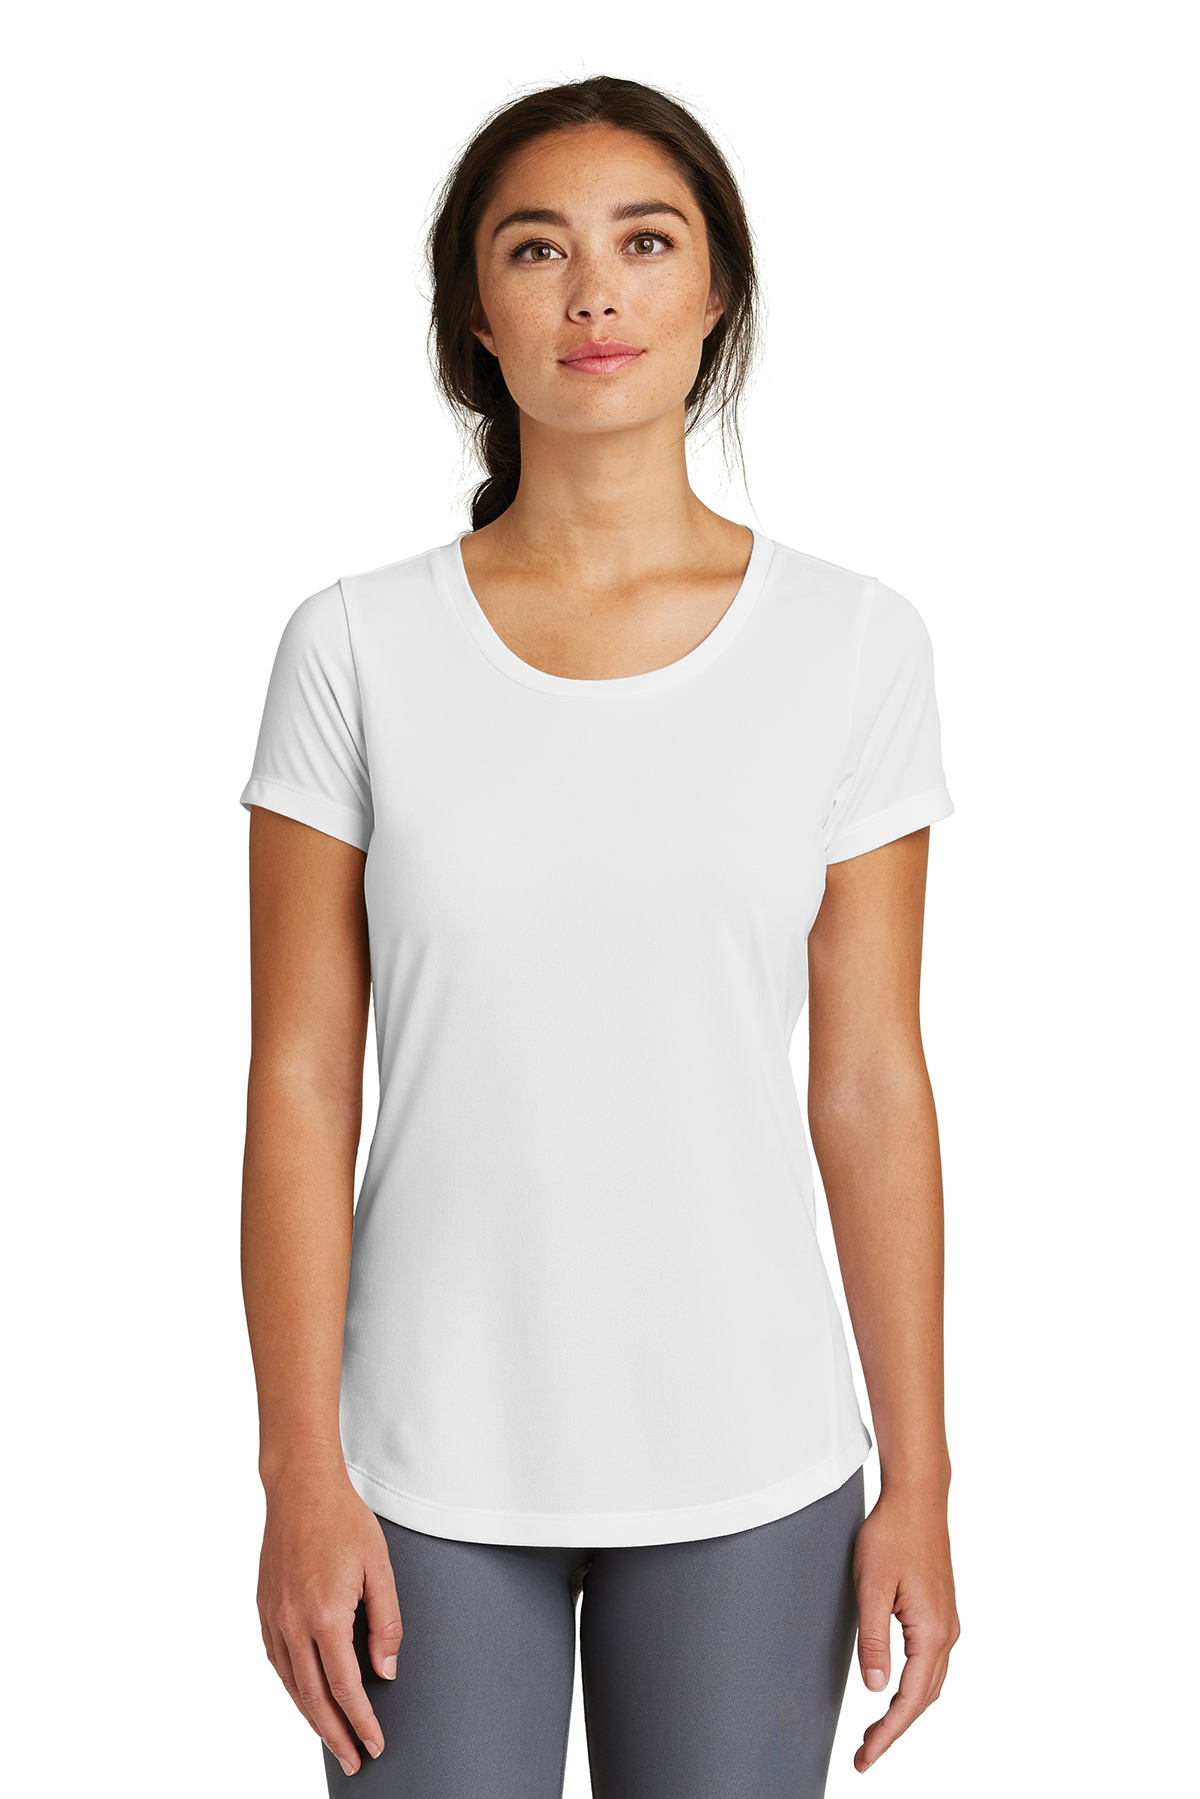 New Era LNEA200 - Ladies Series Performance Scoop Tee